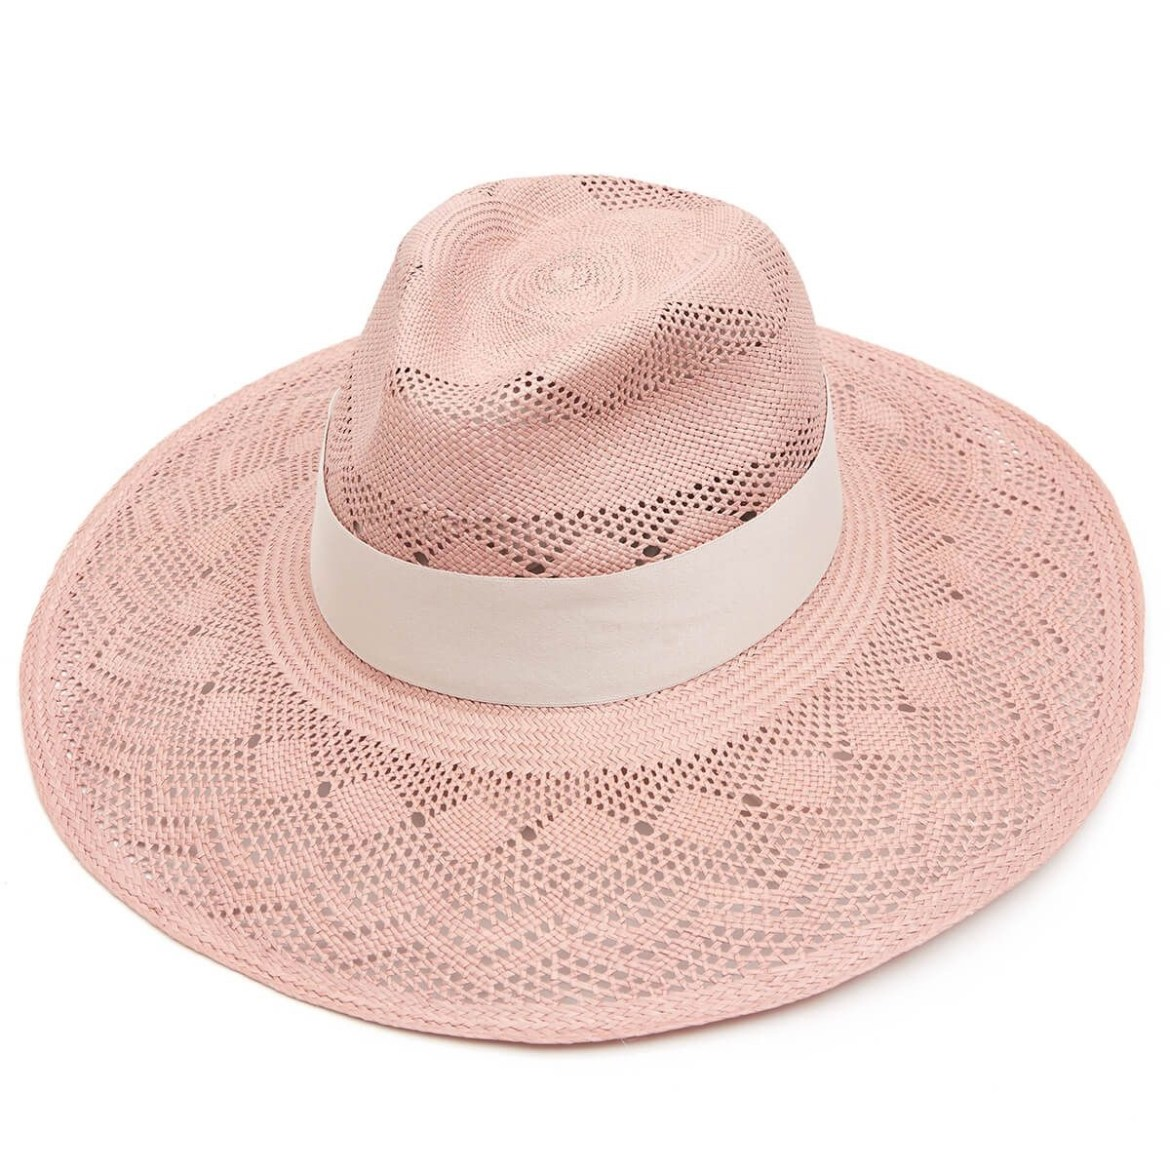 Leila Wide Brim Panama Hat – Lilac by Christys' Hats Up to 10% off